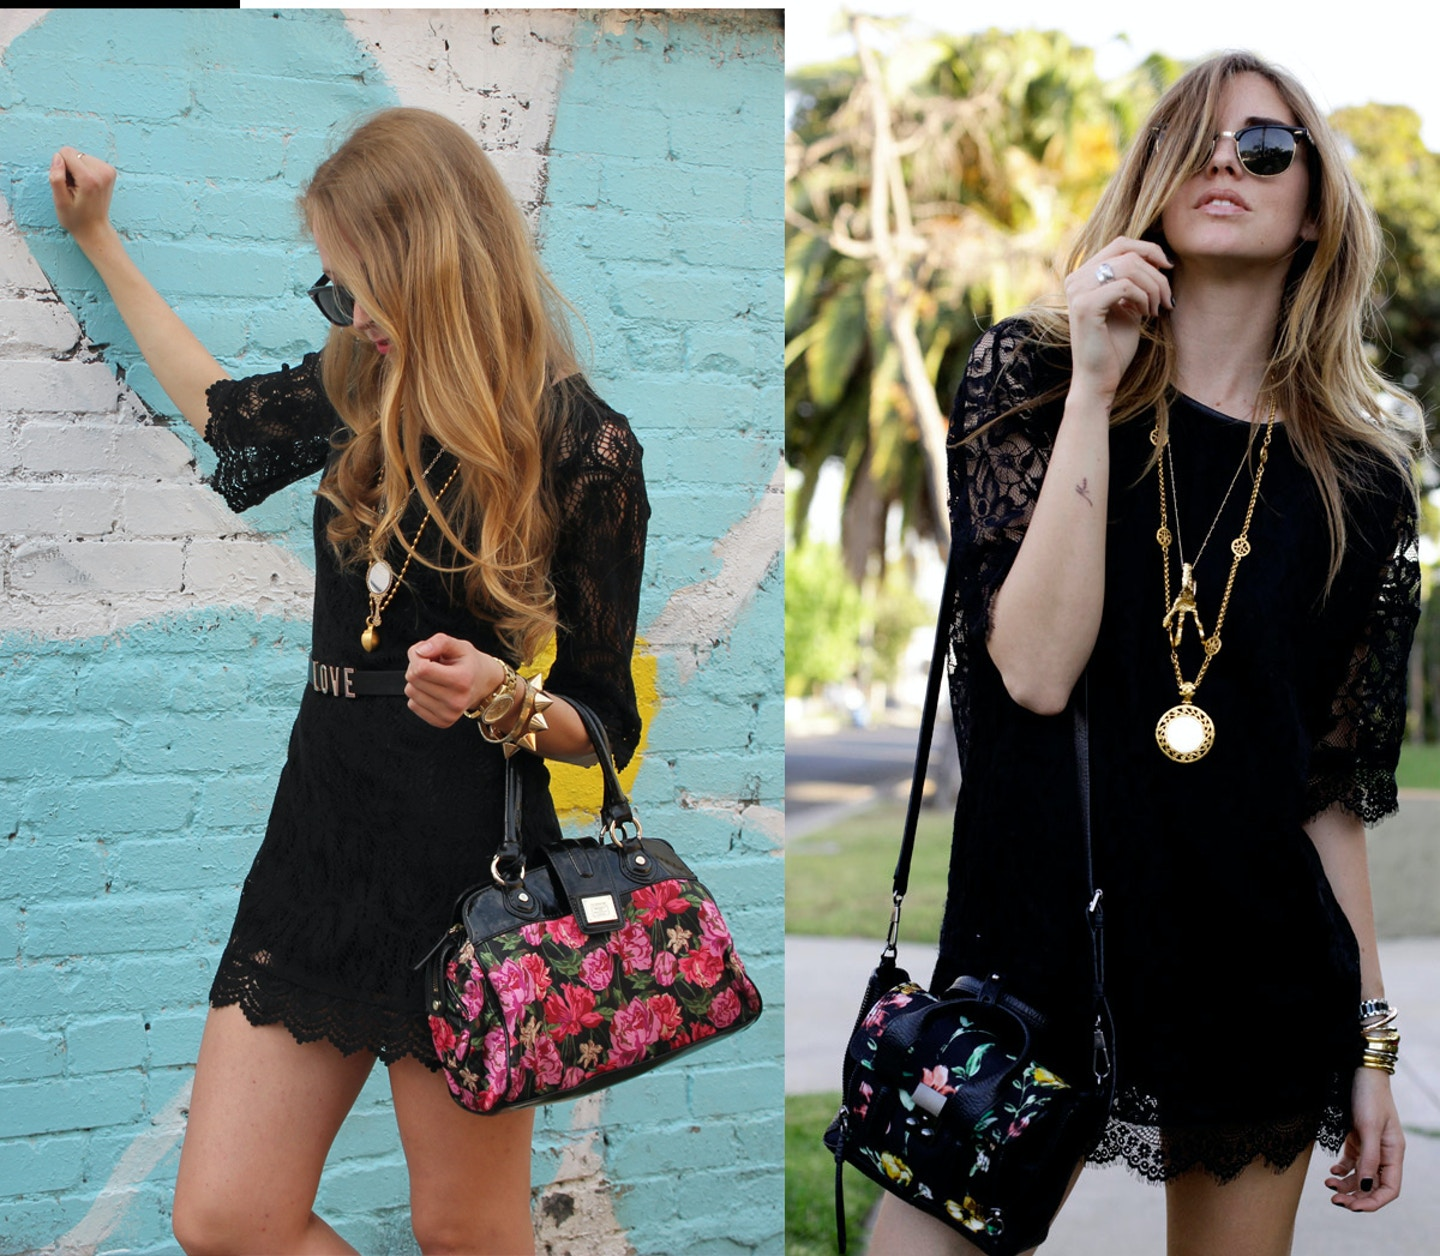 Get the Look for Less: Chiara Ferragni of the Blonde Salad